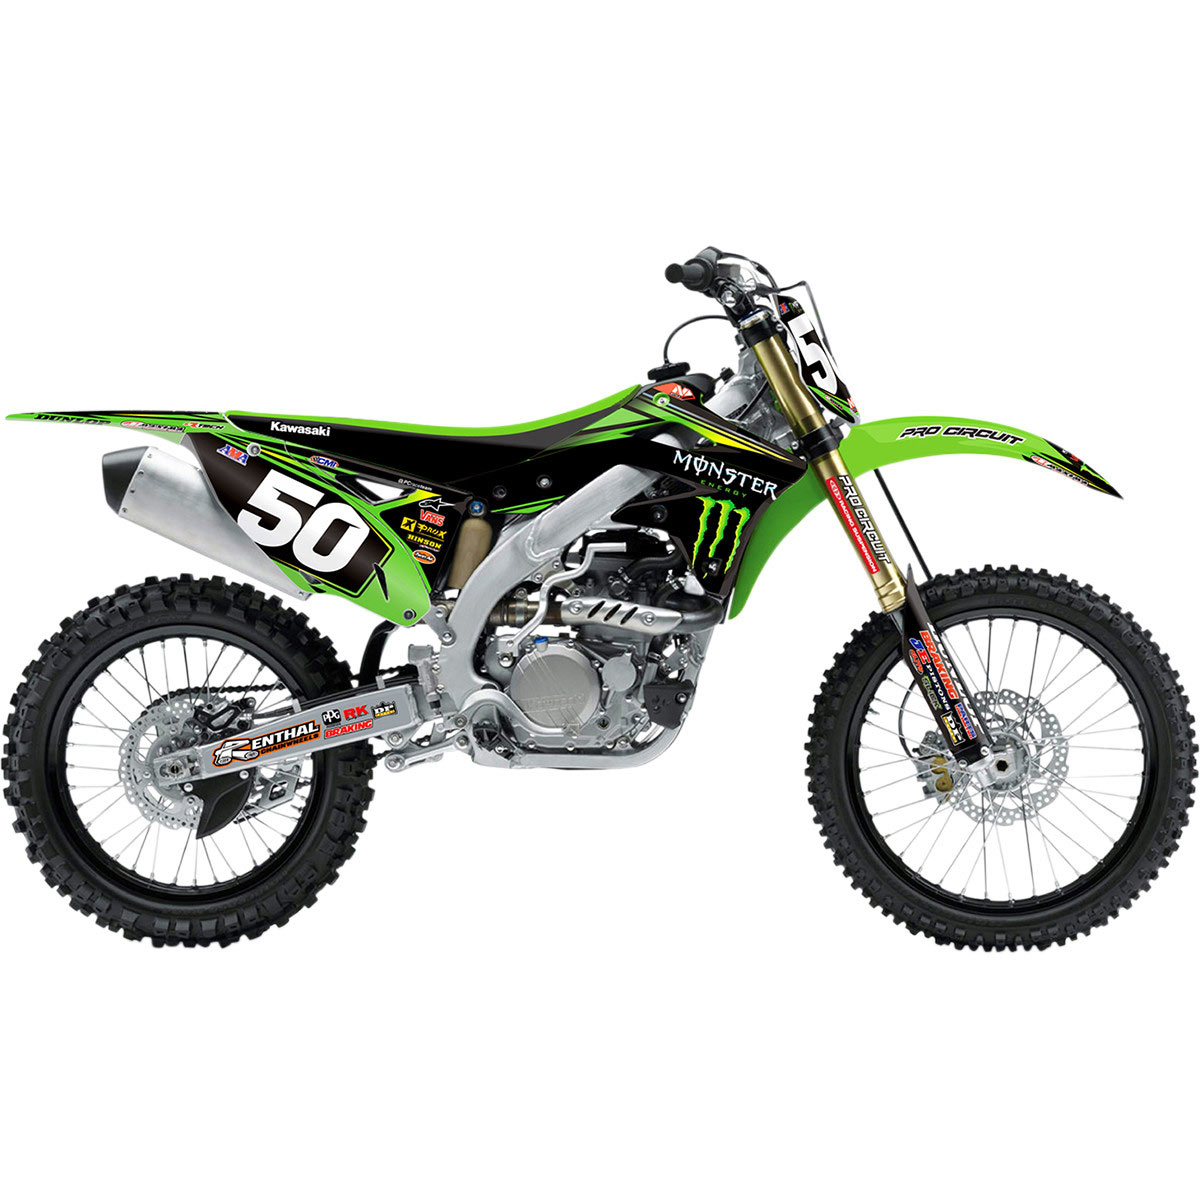 N-Style Race Team Graphic Kit for KX125 03-08